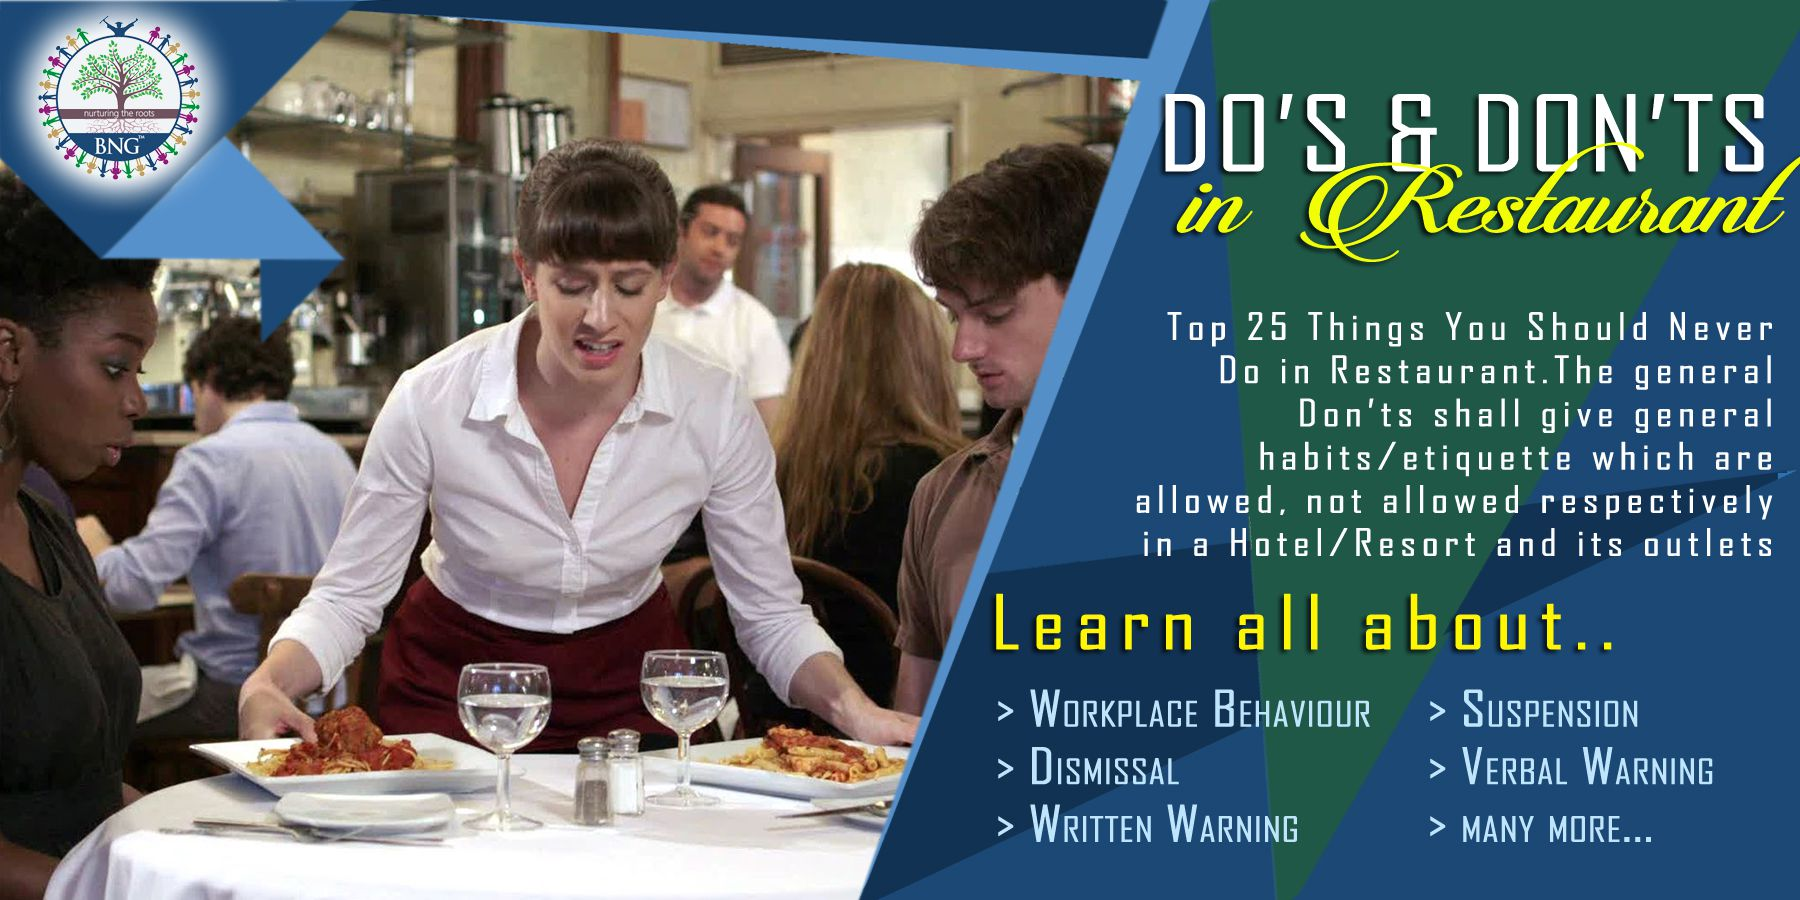 Restaurant dos and donts by BNG Hotel Management Kolkata